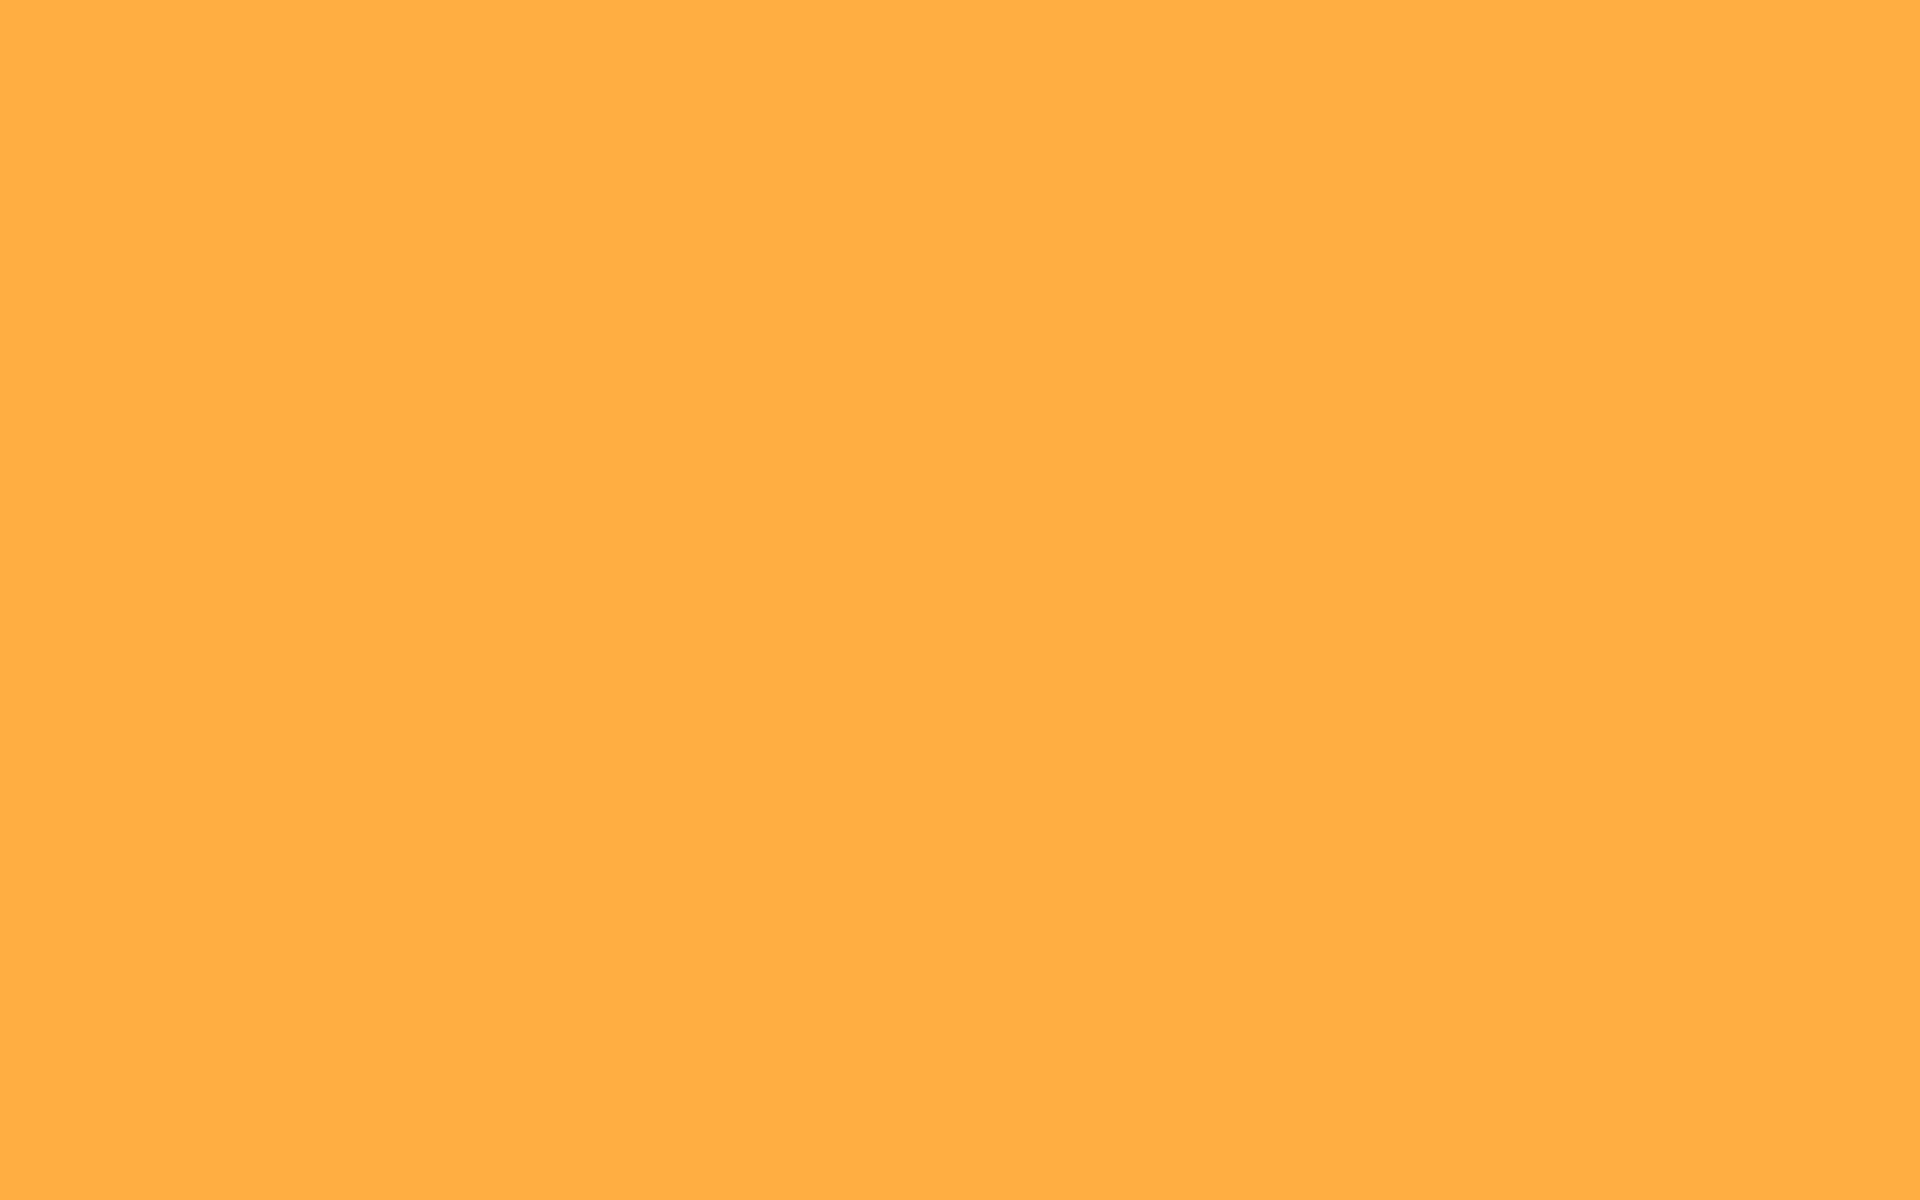 1920x1200 Yellow Orange Solid Color Background